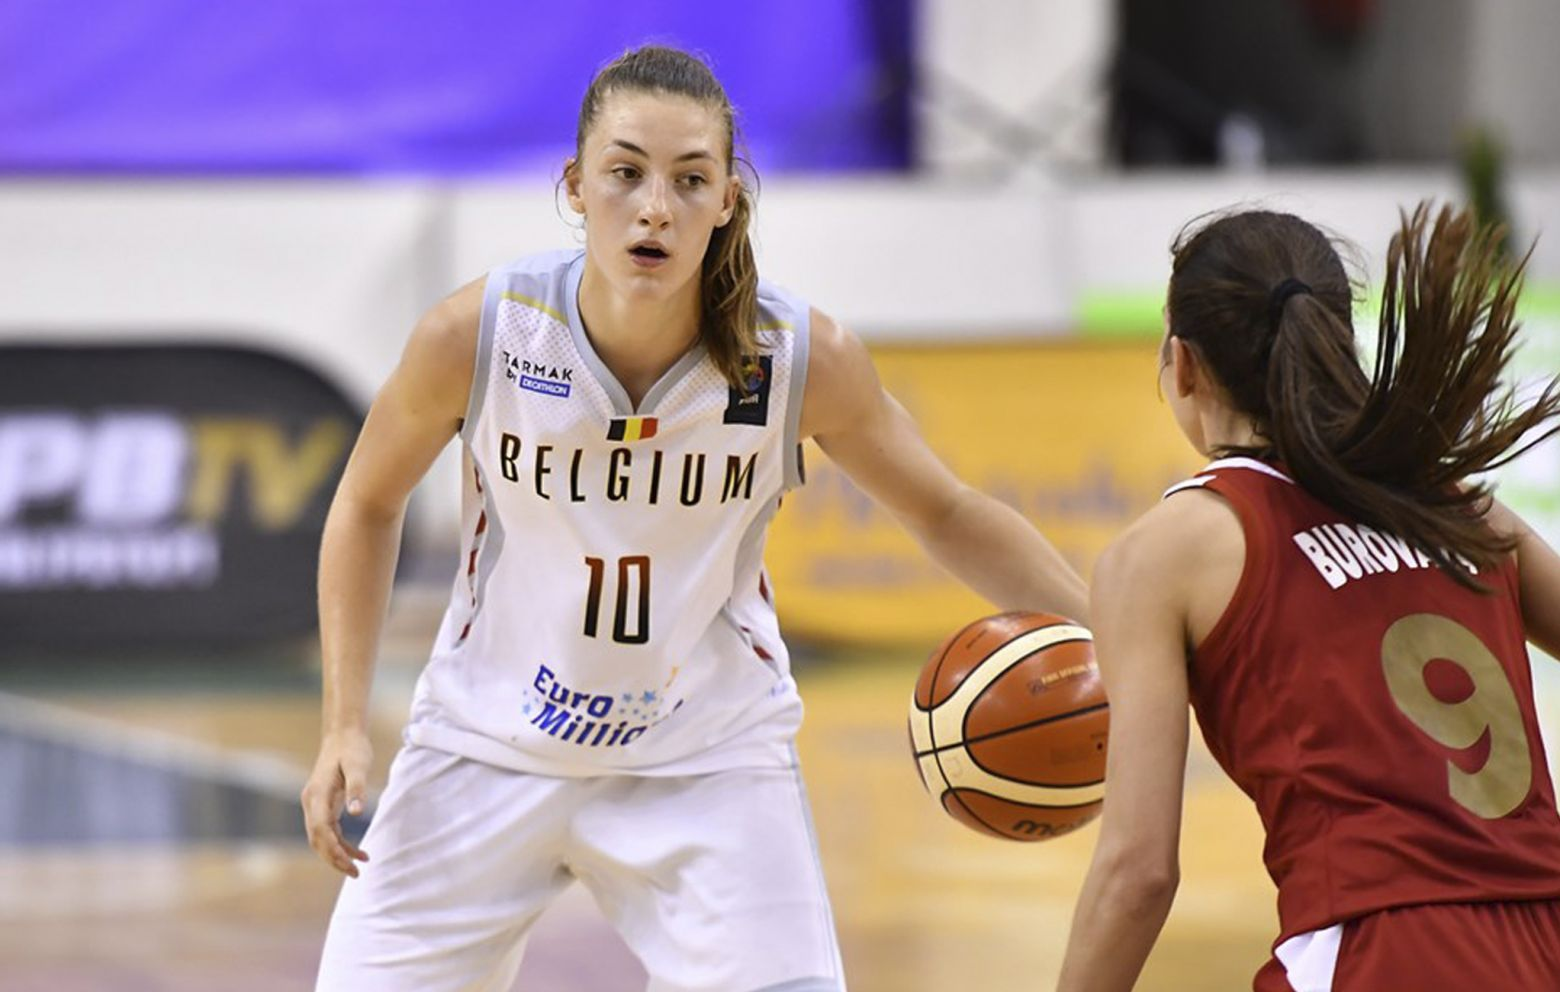 LAURE RESIMONT (1998) has signed with Regeneracom Sports